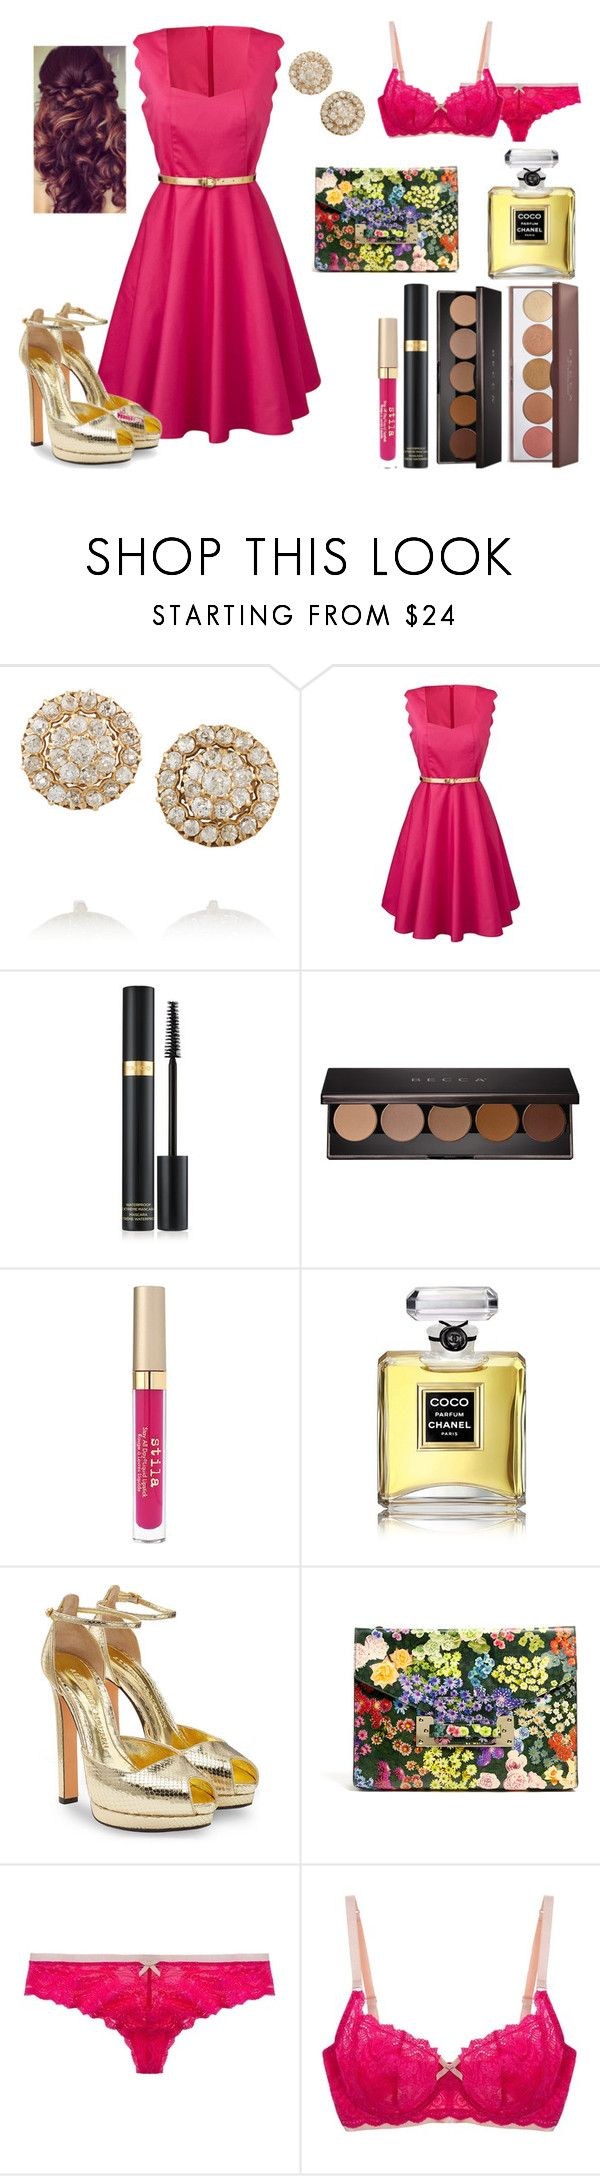 """Untitled #611"" by miss-meghan-elizabeth on Polyvore featuring Fred Leighton, Tom Ford, Becca, Stila, Chanel, Alexander McQueen, Sophie Hulme and Elle Macpherson Intimates"